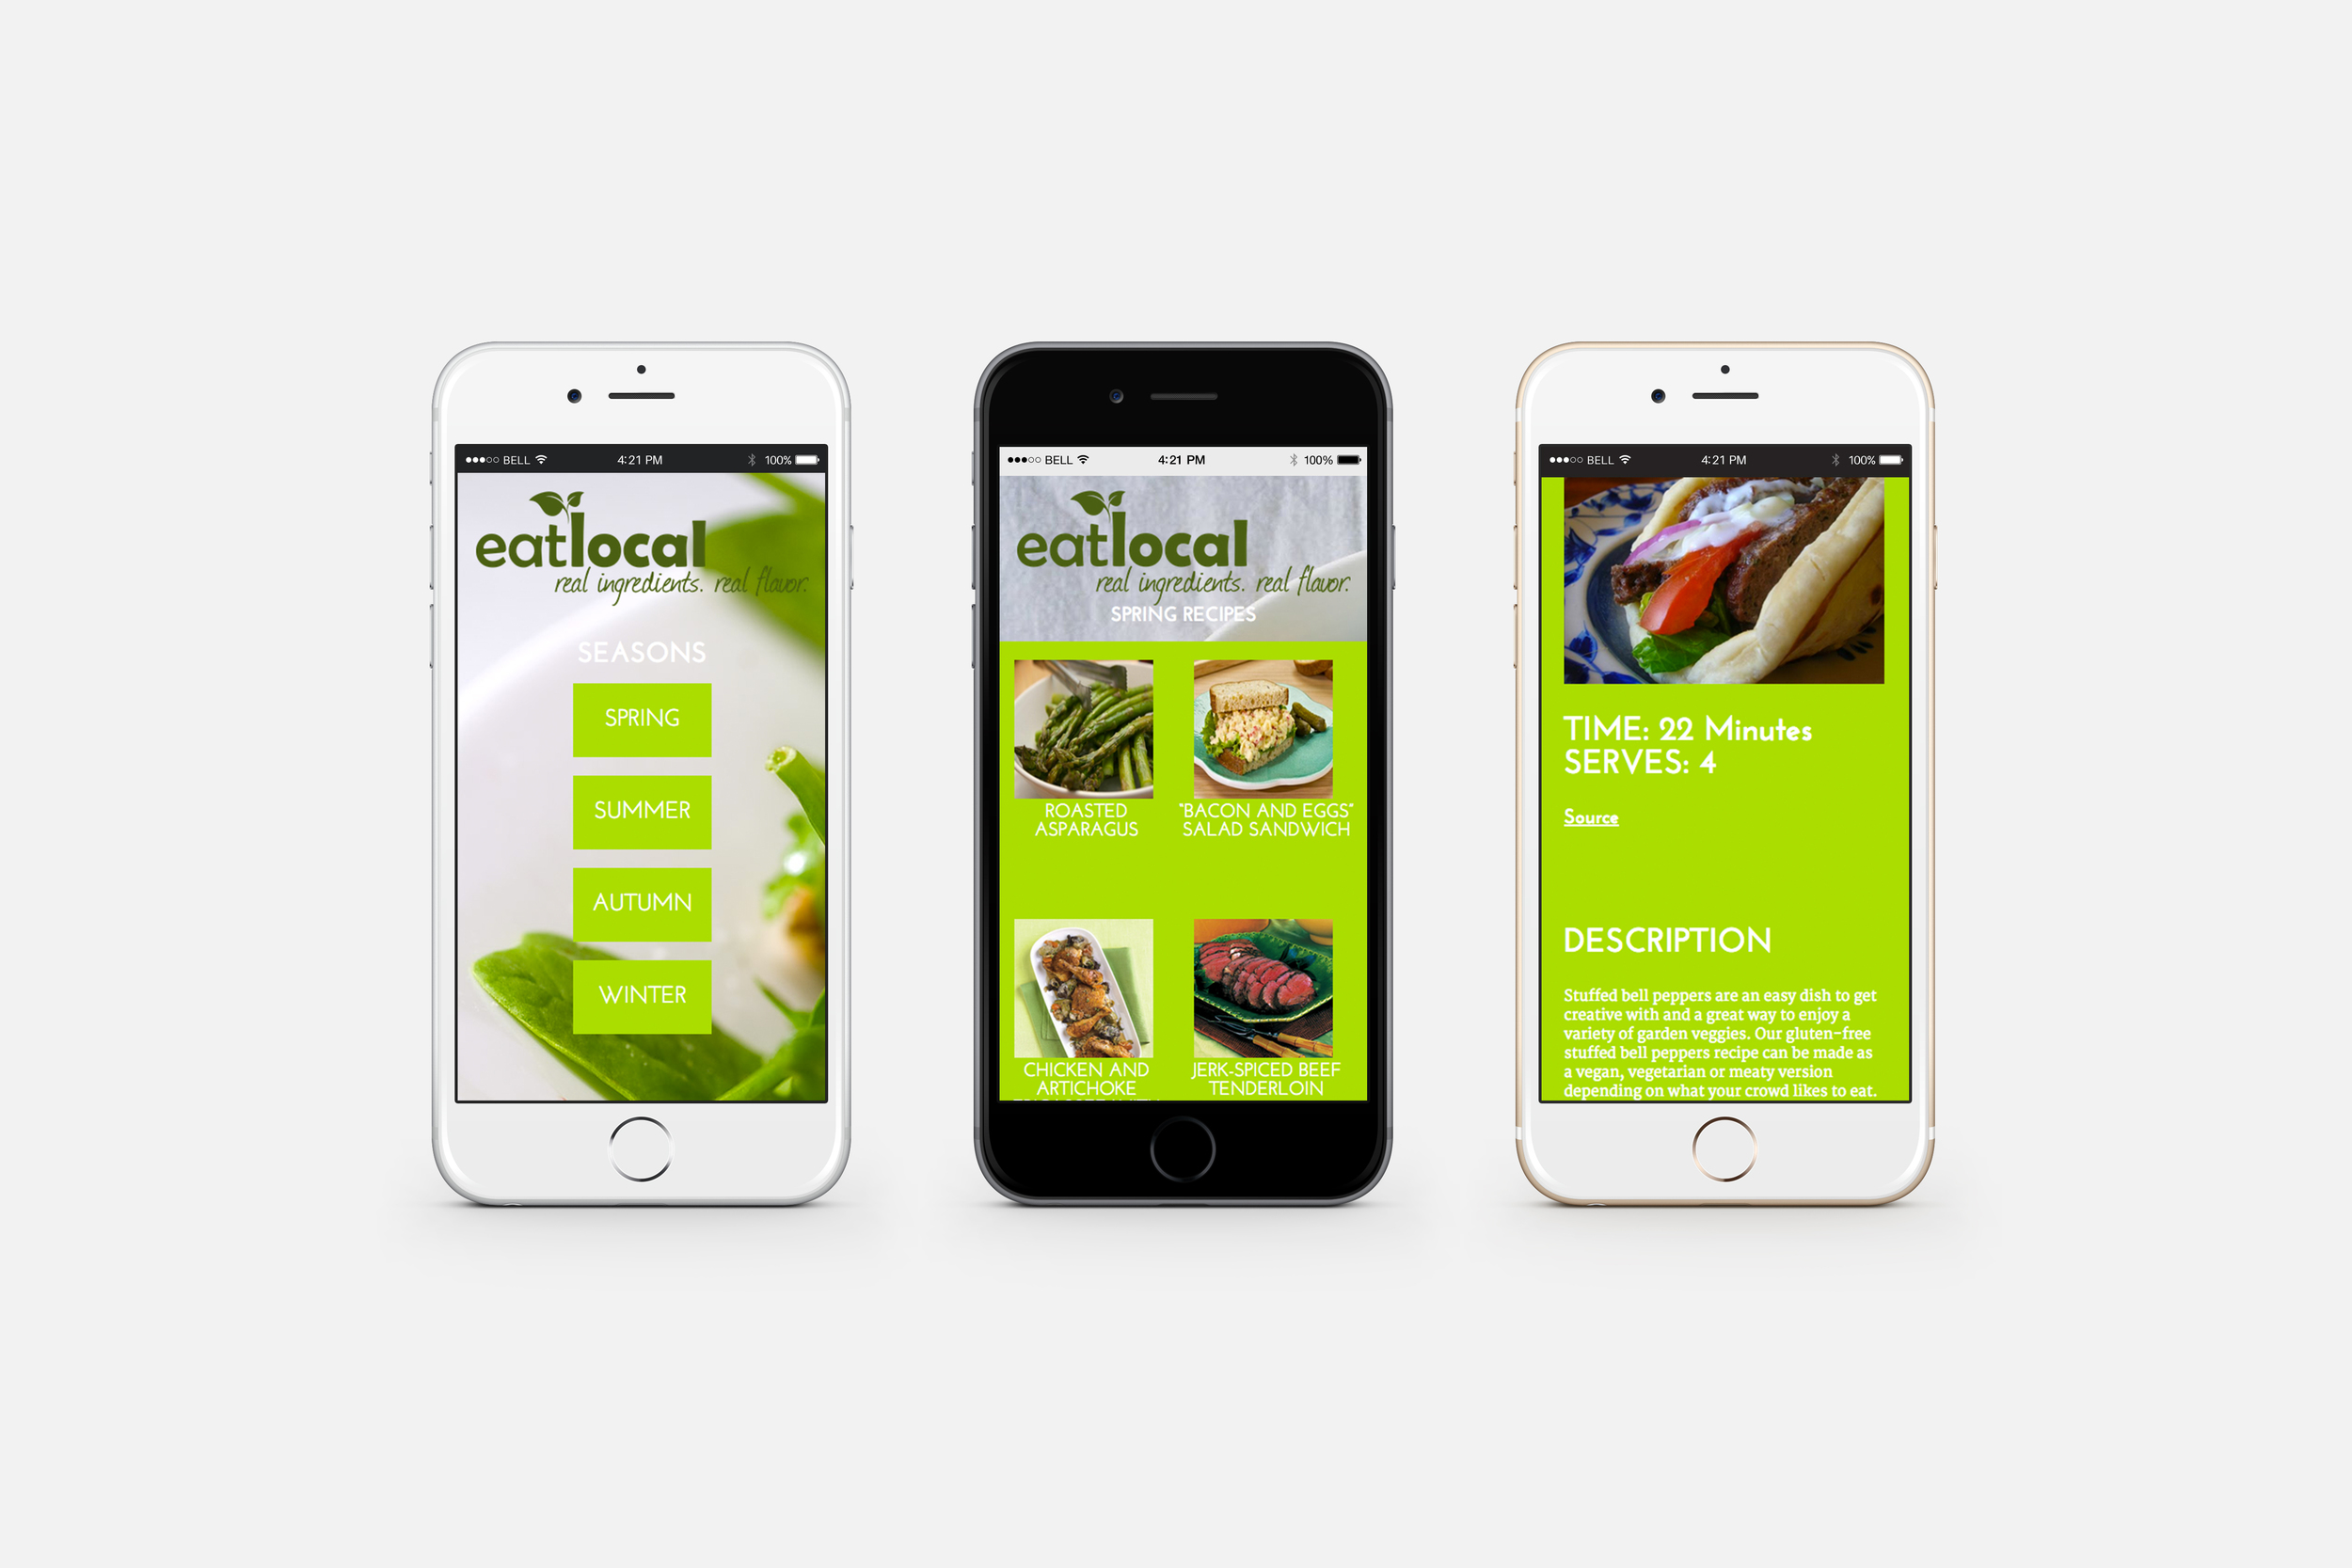 eat local phone mockup.jpg